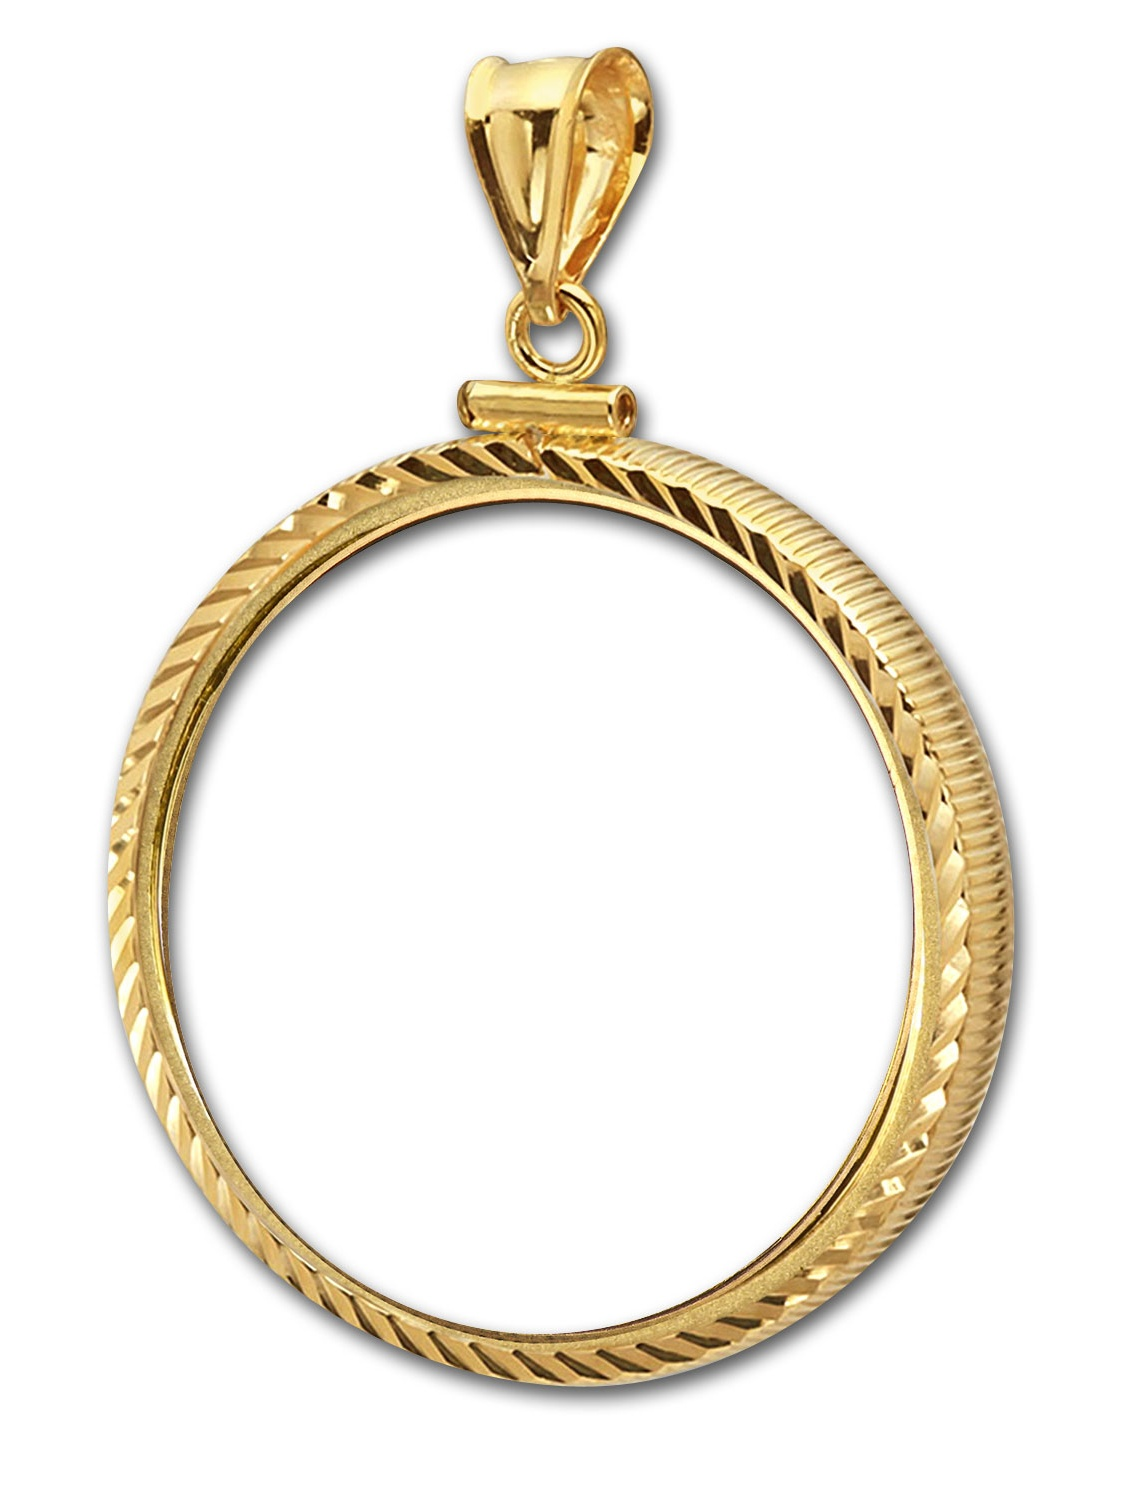 14K Gold Screw-Top Diamond-Cut Coin Bezel - 32.7 mm